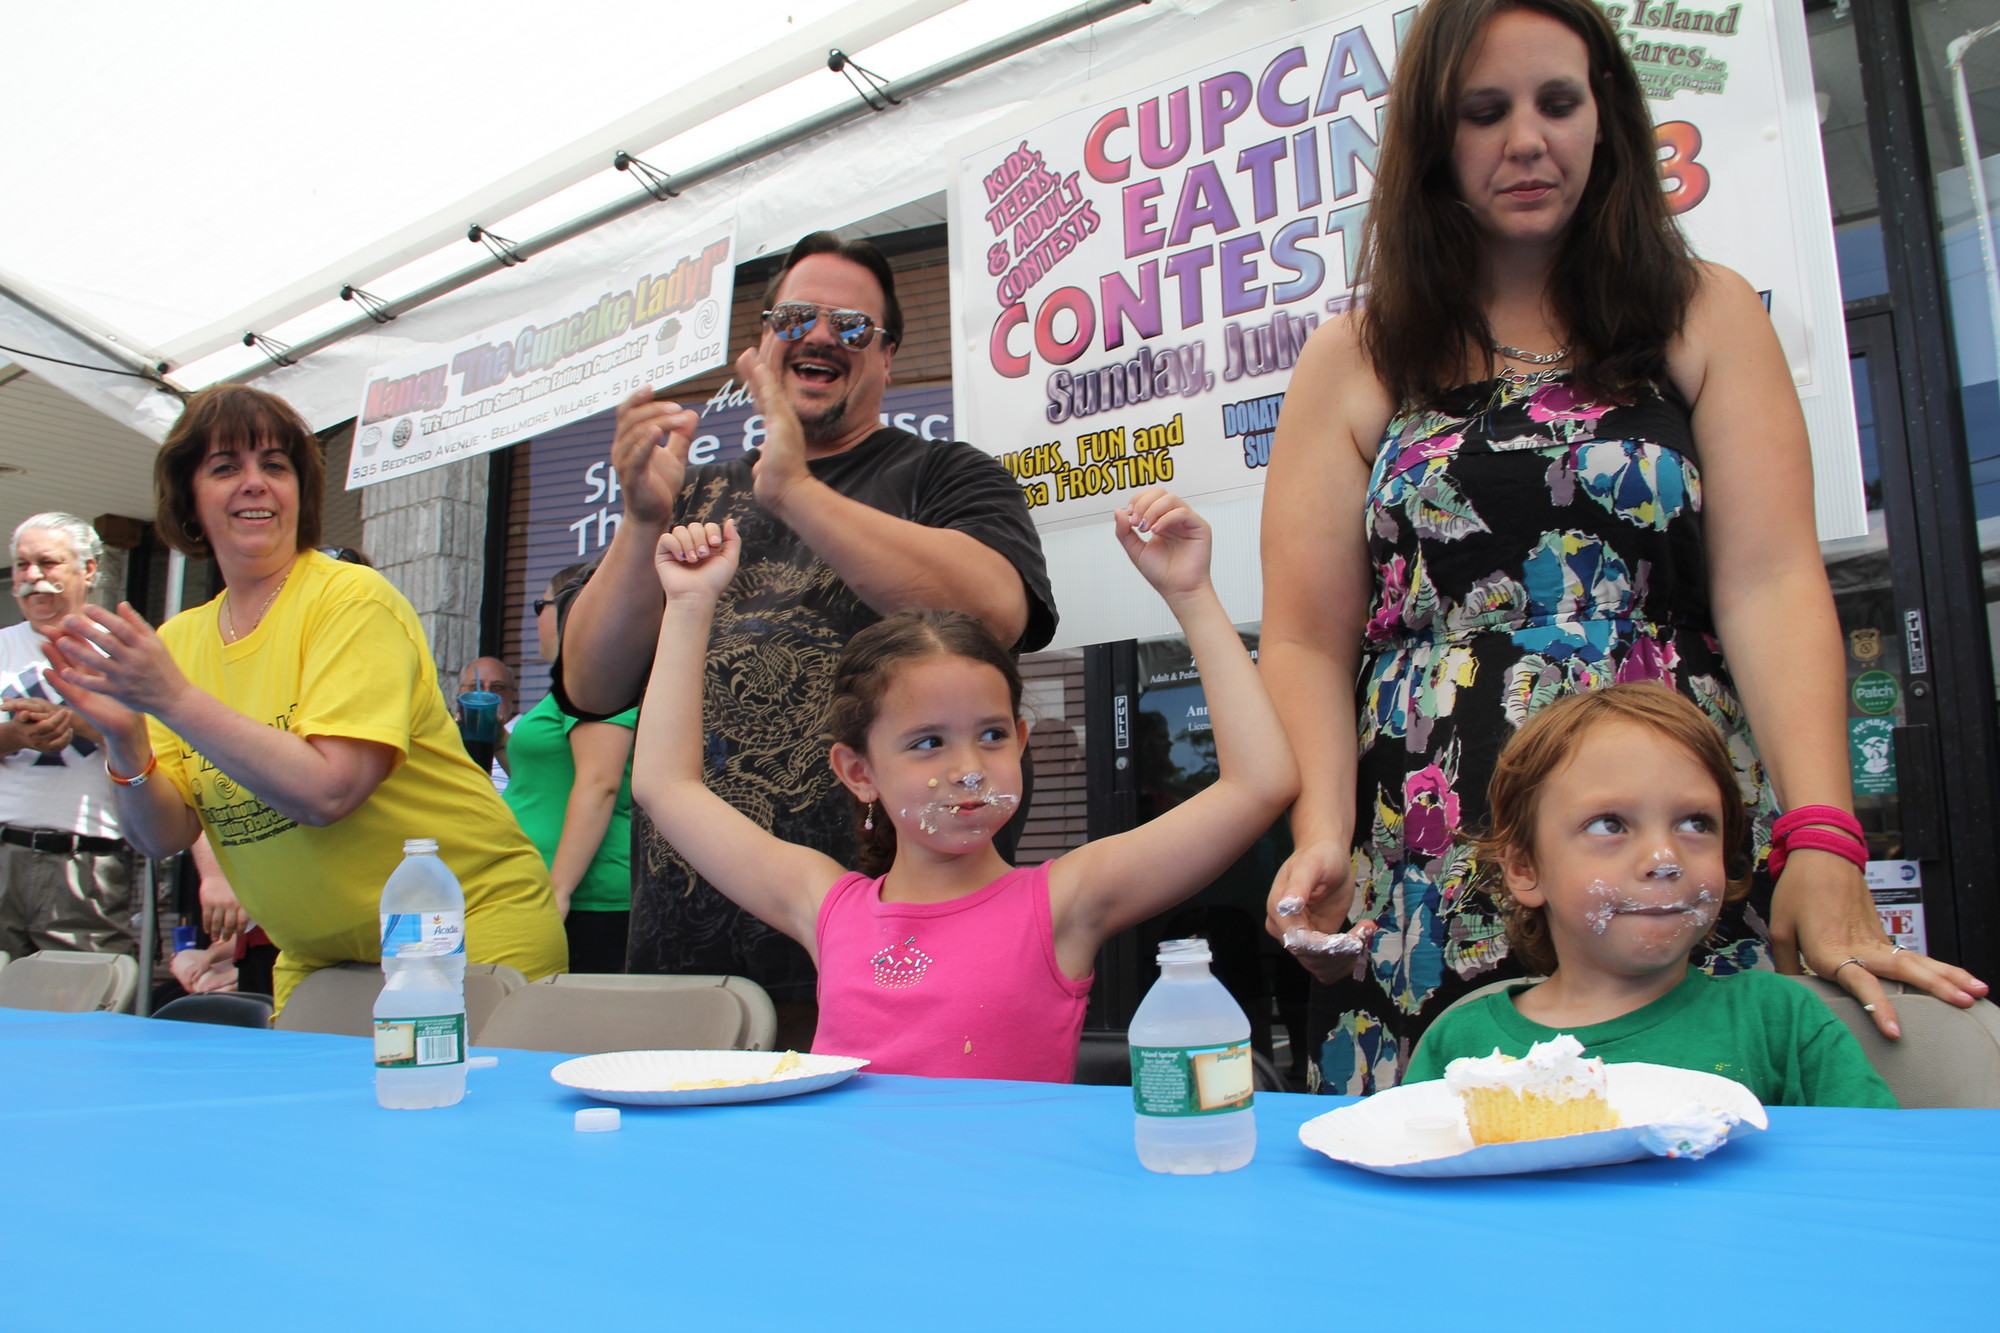 Nancy Moniodes, left, cheered on Danielle Manganiello, 6,  with her father, Mark, after she tied for first in the contest.